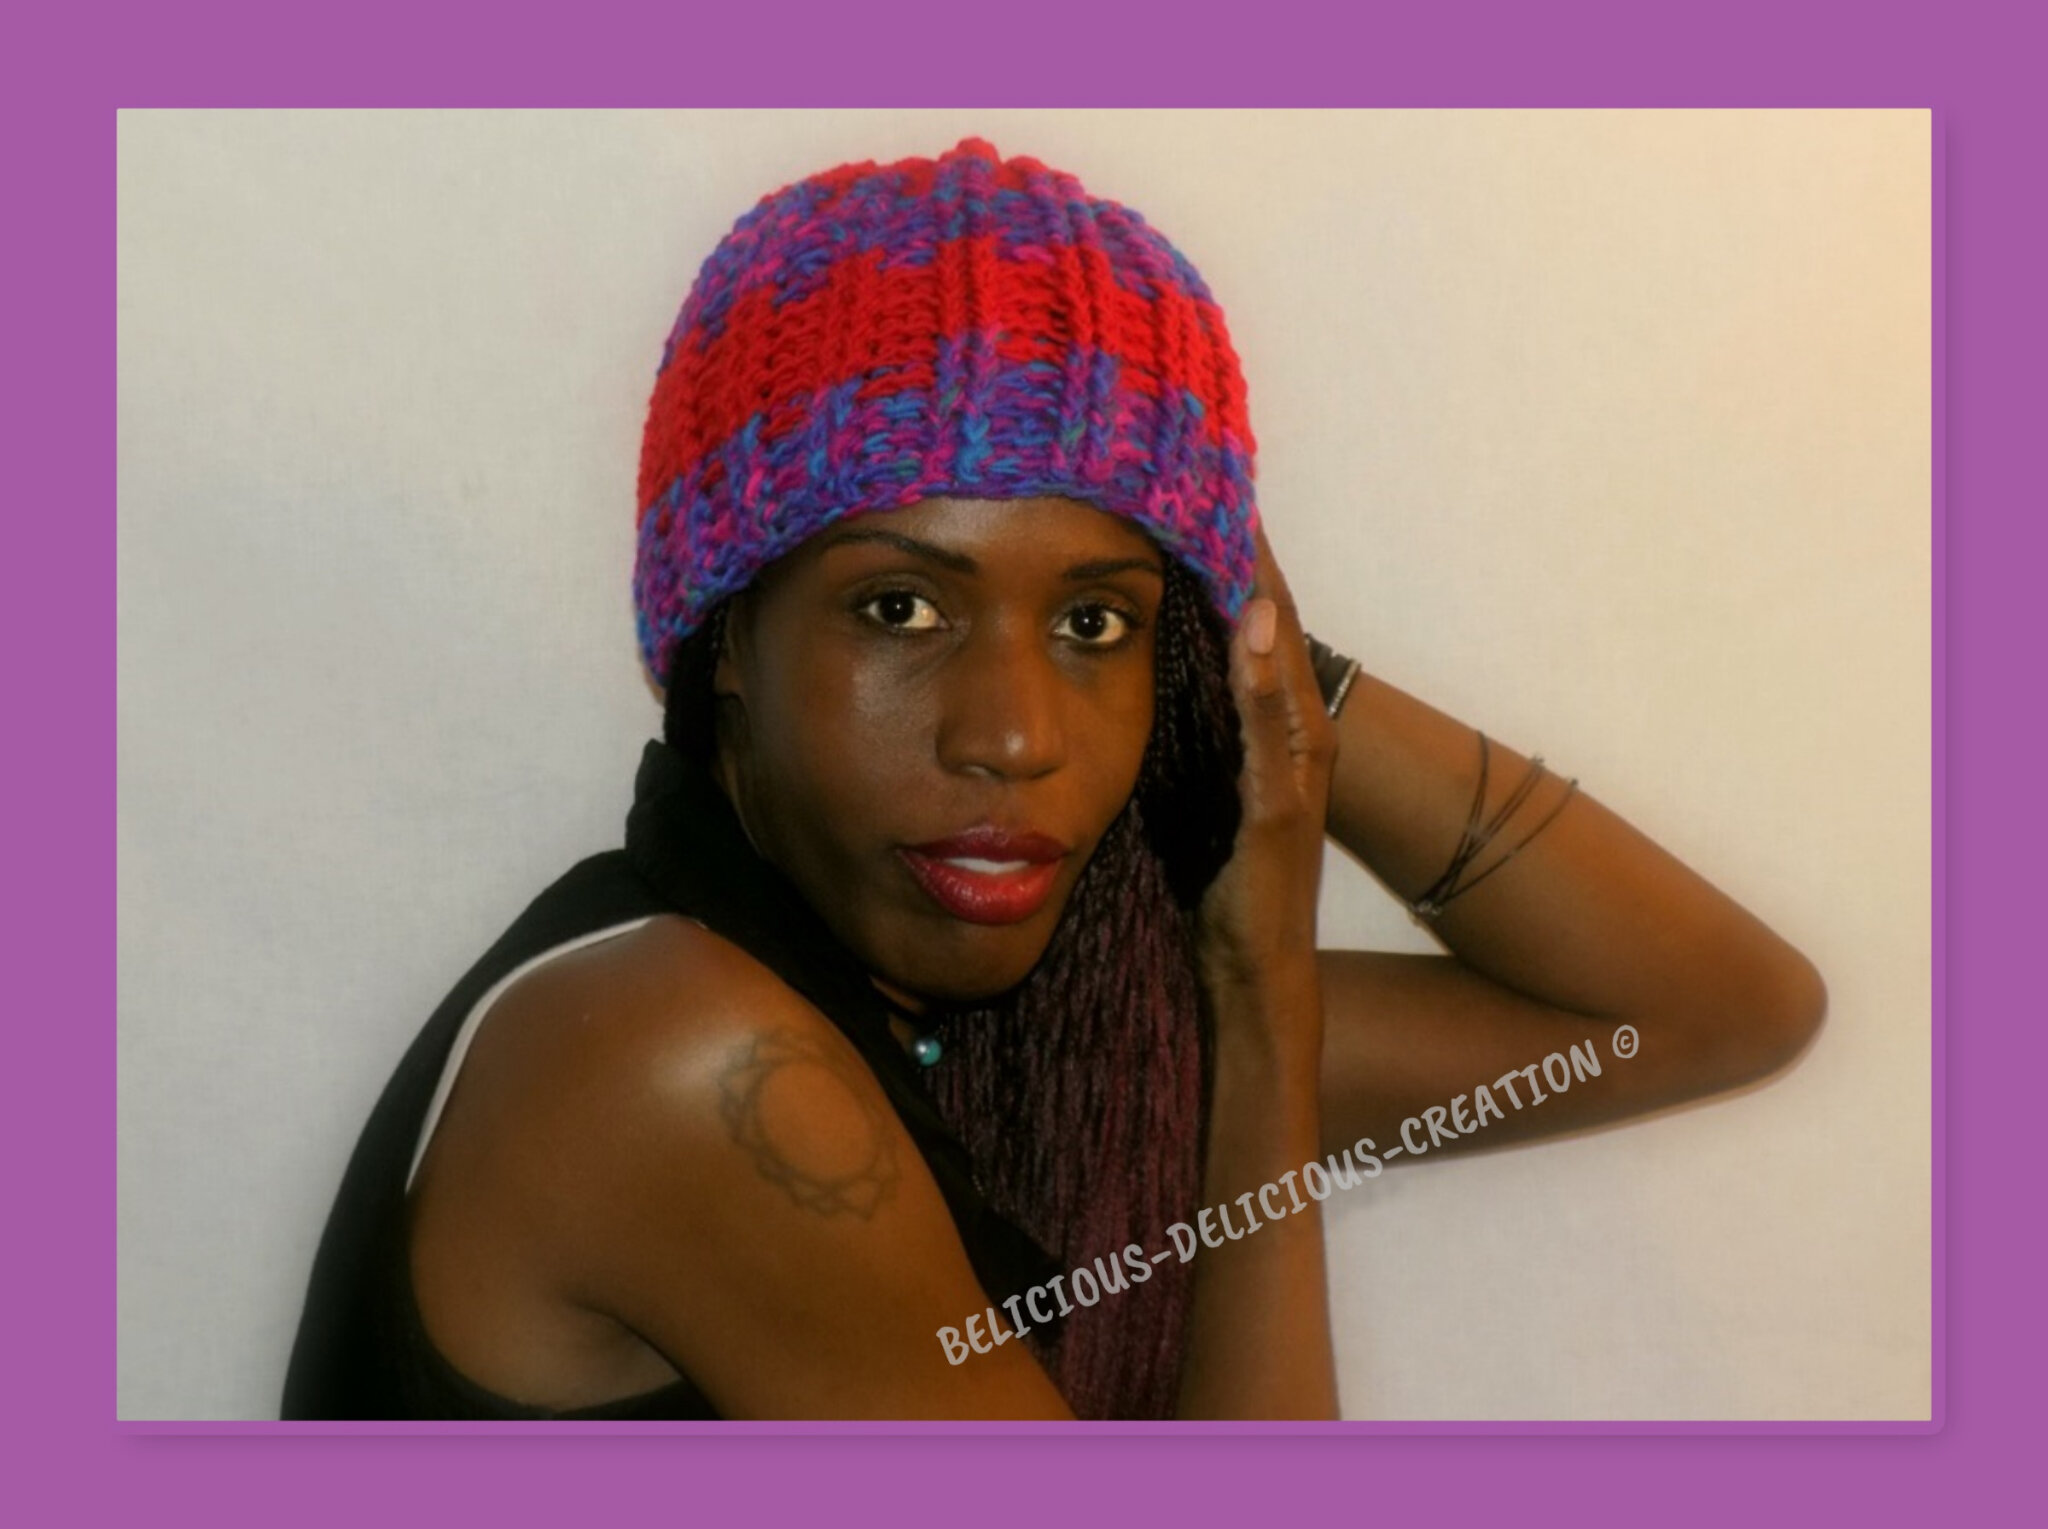 Originale bonnet Crochet unisex !! PURPLE RED!! En laine Taille unique handmade belicious-delicious-creation